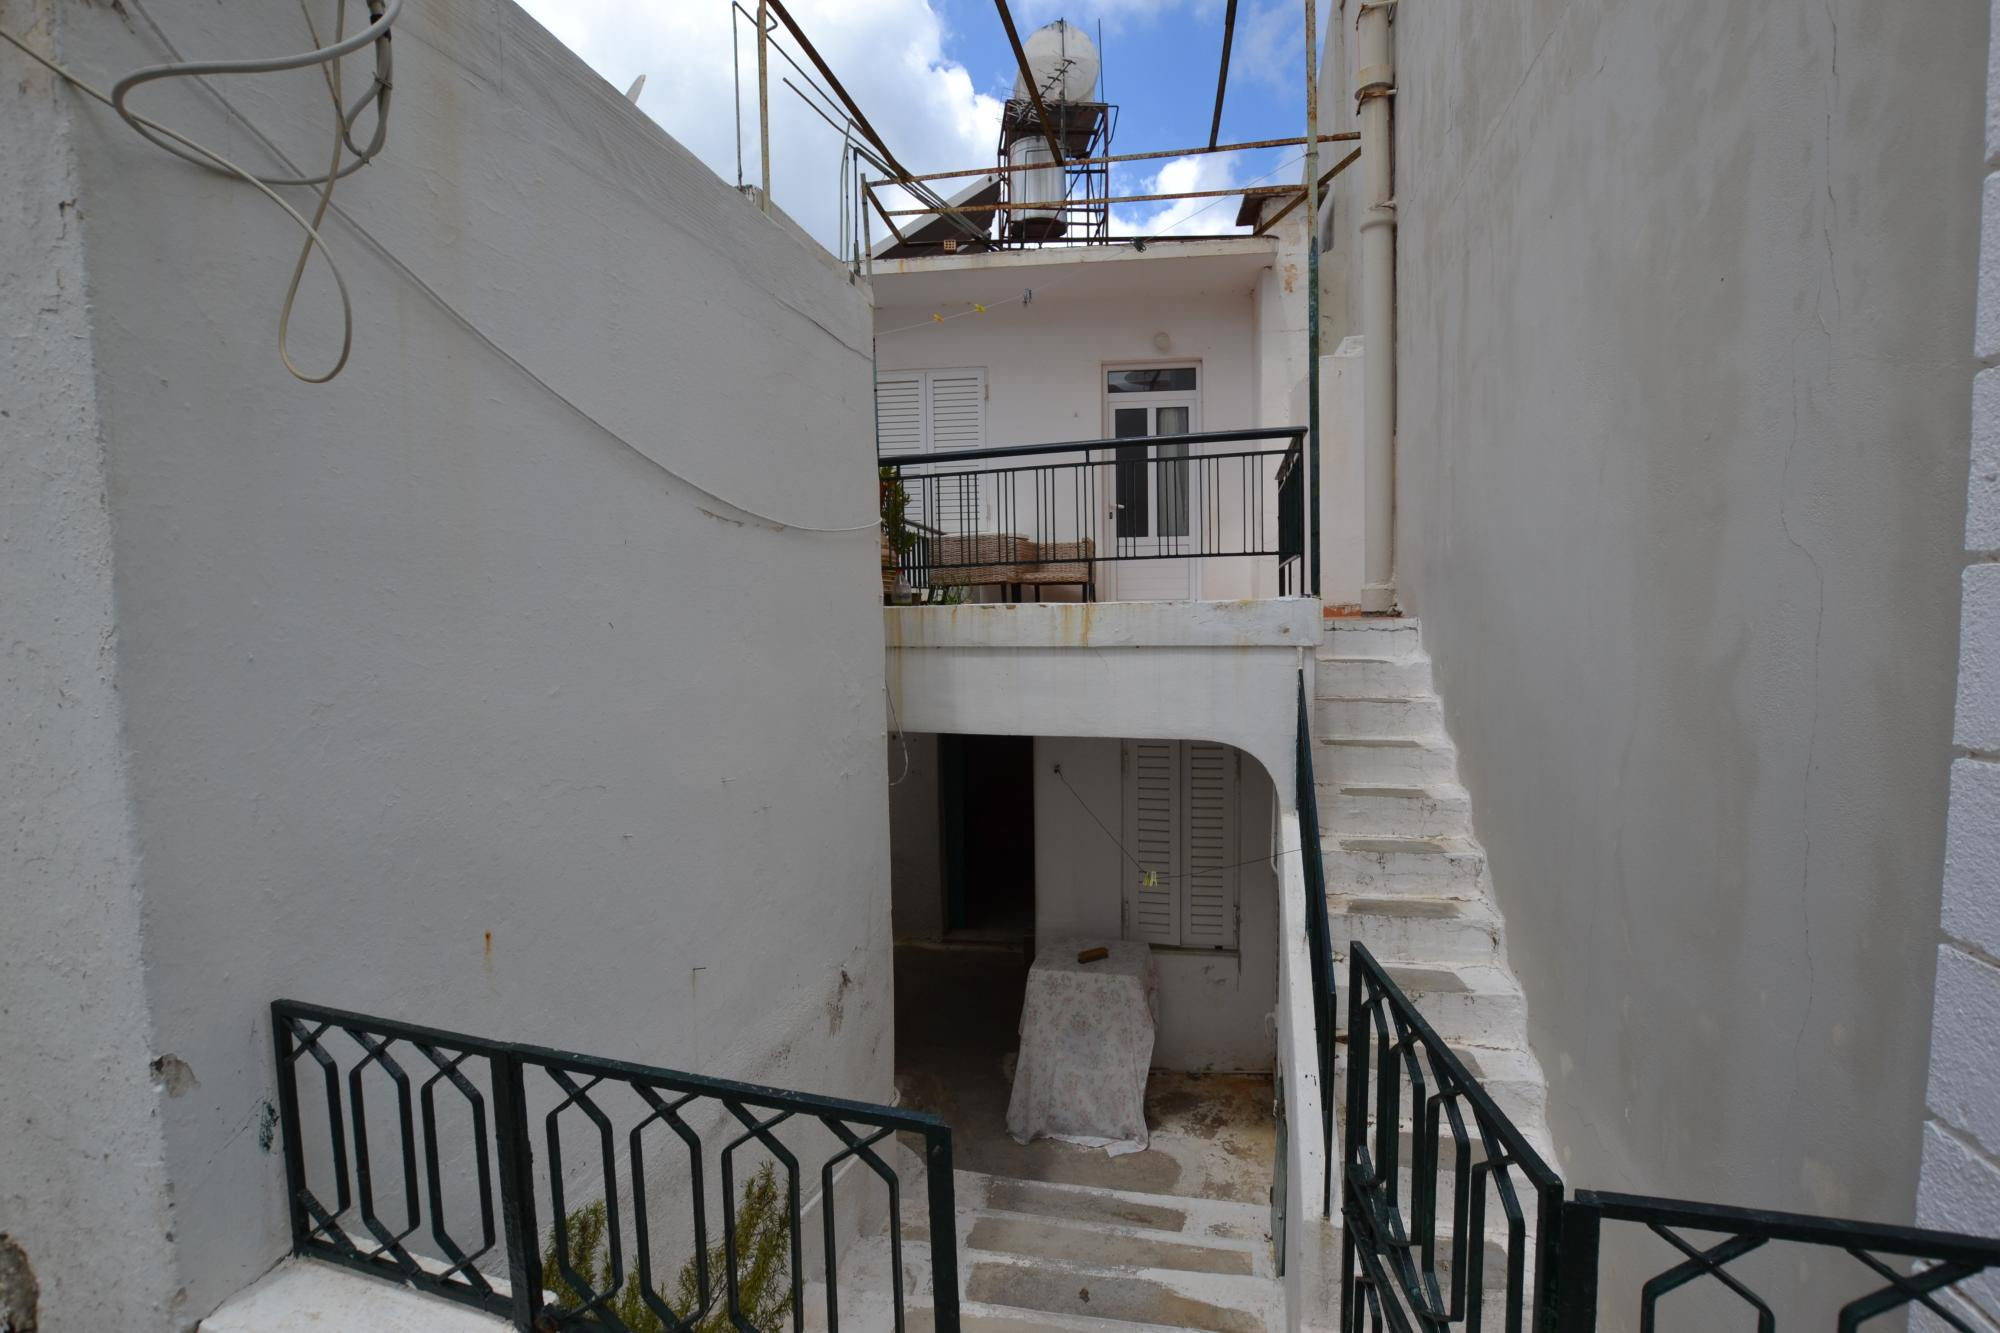 2 bedroom village house with large balcony and terrace.